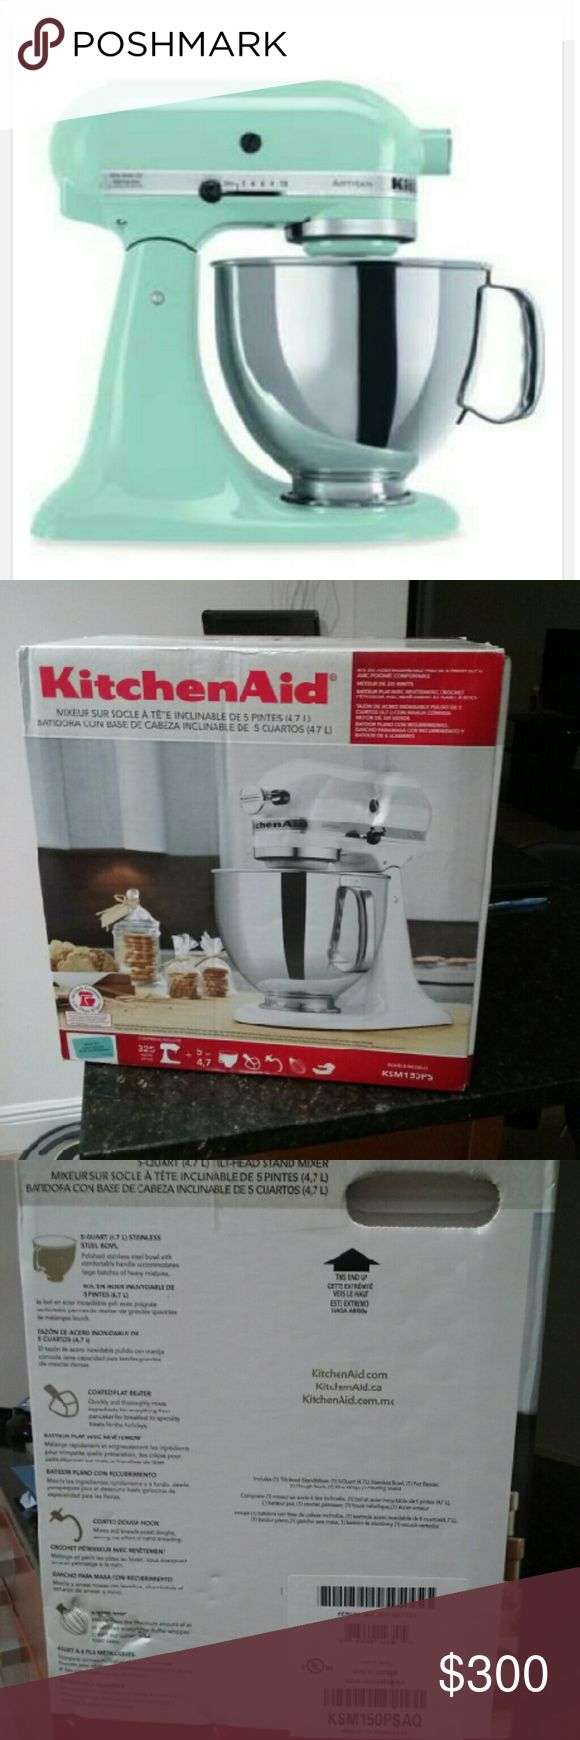 Kitchenaid Artisan 5 Qt. Stand Mixer Model:KSM150PS New in the box.  Kitchenaid Artisan 5 Qt. Stand Mixer In Aqua This attractively styled KitchenAid Stand Mixer is reason enough for you to get busy in the kitchen. With a powerful 325 watt motor, it can handle any task you put to it. Other